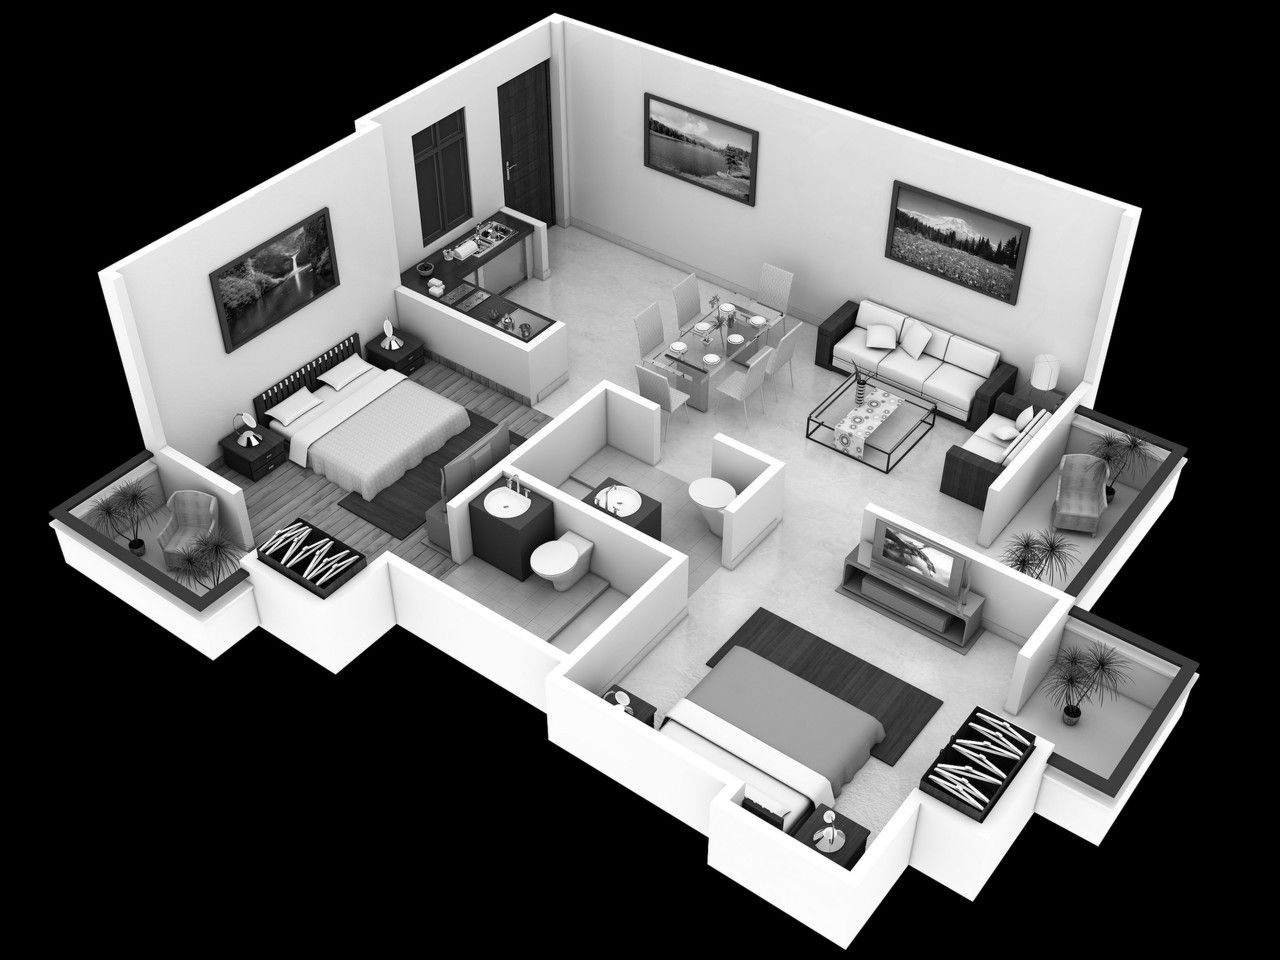 Alluring Small House Ideas Style Excellent House Interior Design Alluring 2 Bedroom House Interior Designs Inspiration Design